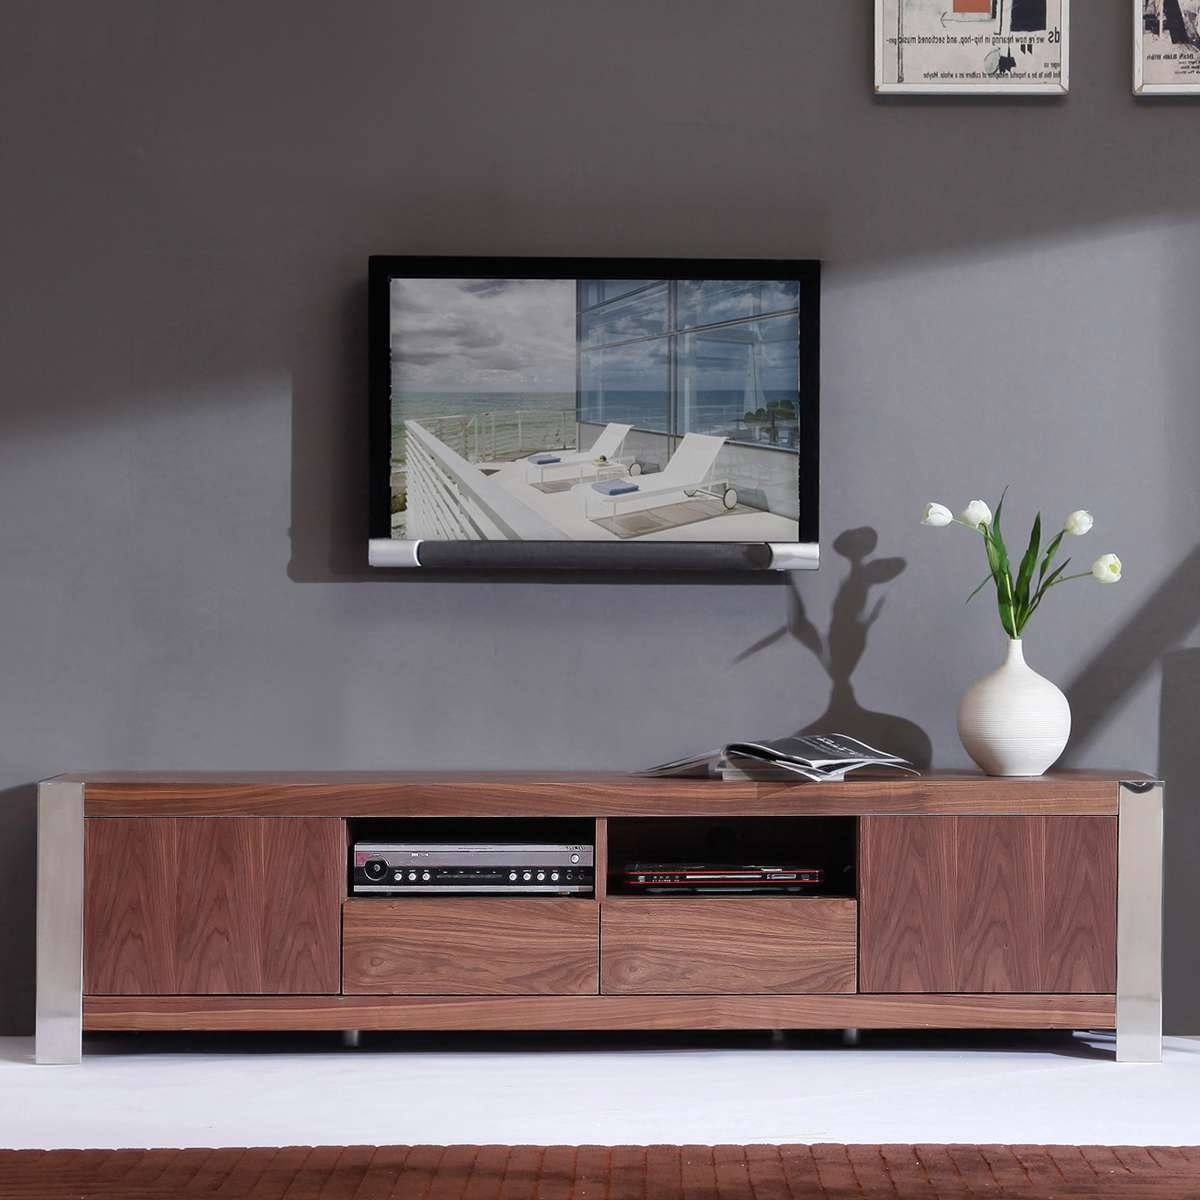 Regaling Tv Stand Cabinet Electric Fireplace Plus Wenge Furnitech In Low Profile Contemporary Tv Stands (View 10 of 15)